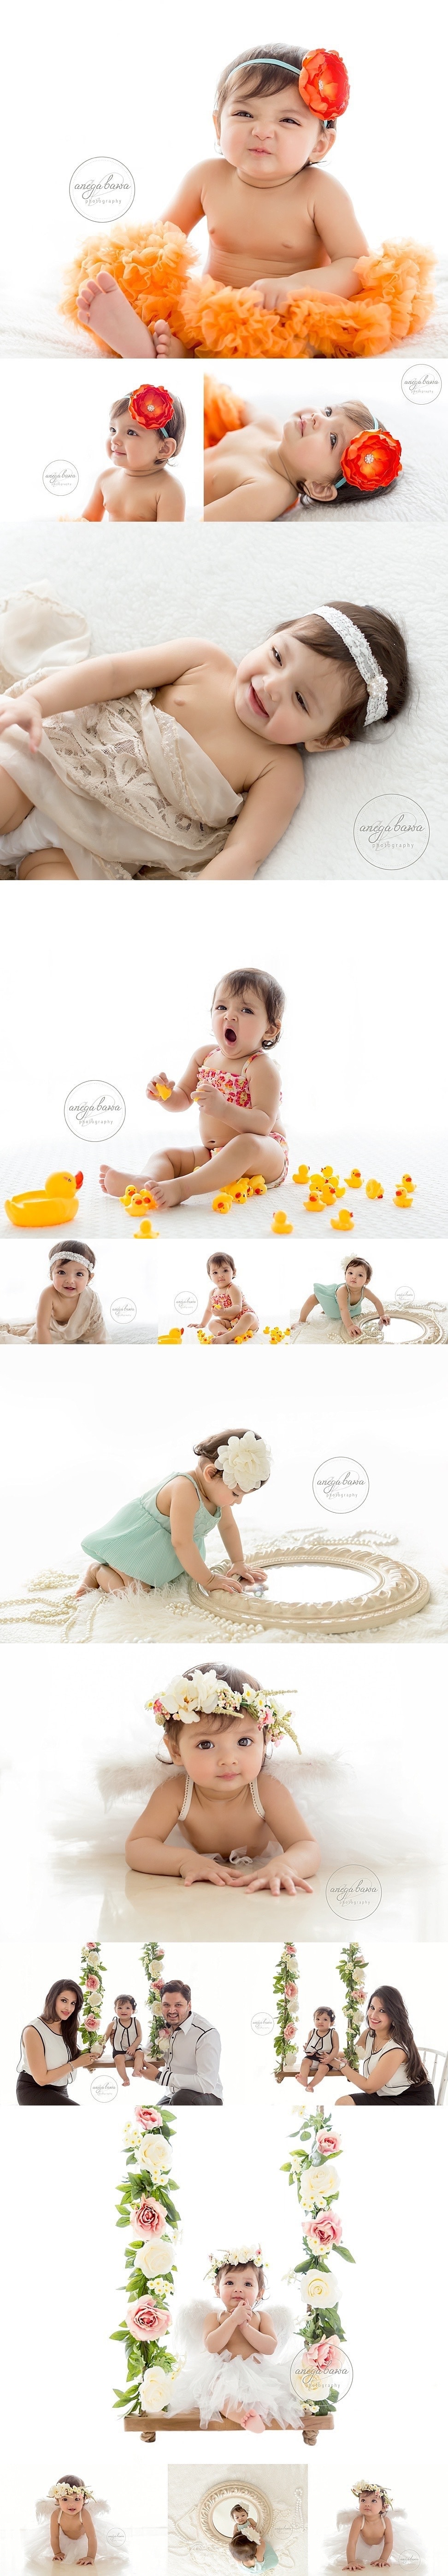 sitter_session_8-months-girl_baby_child